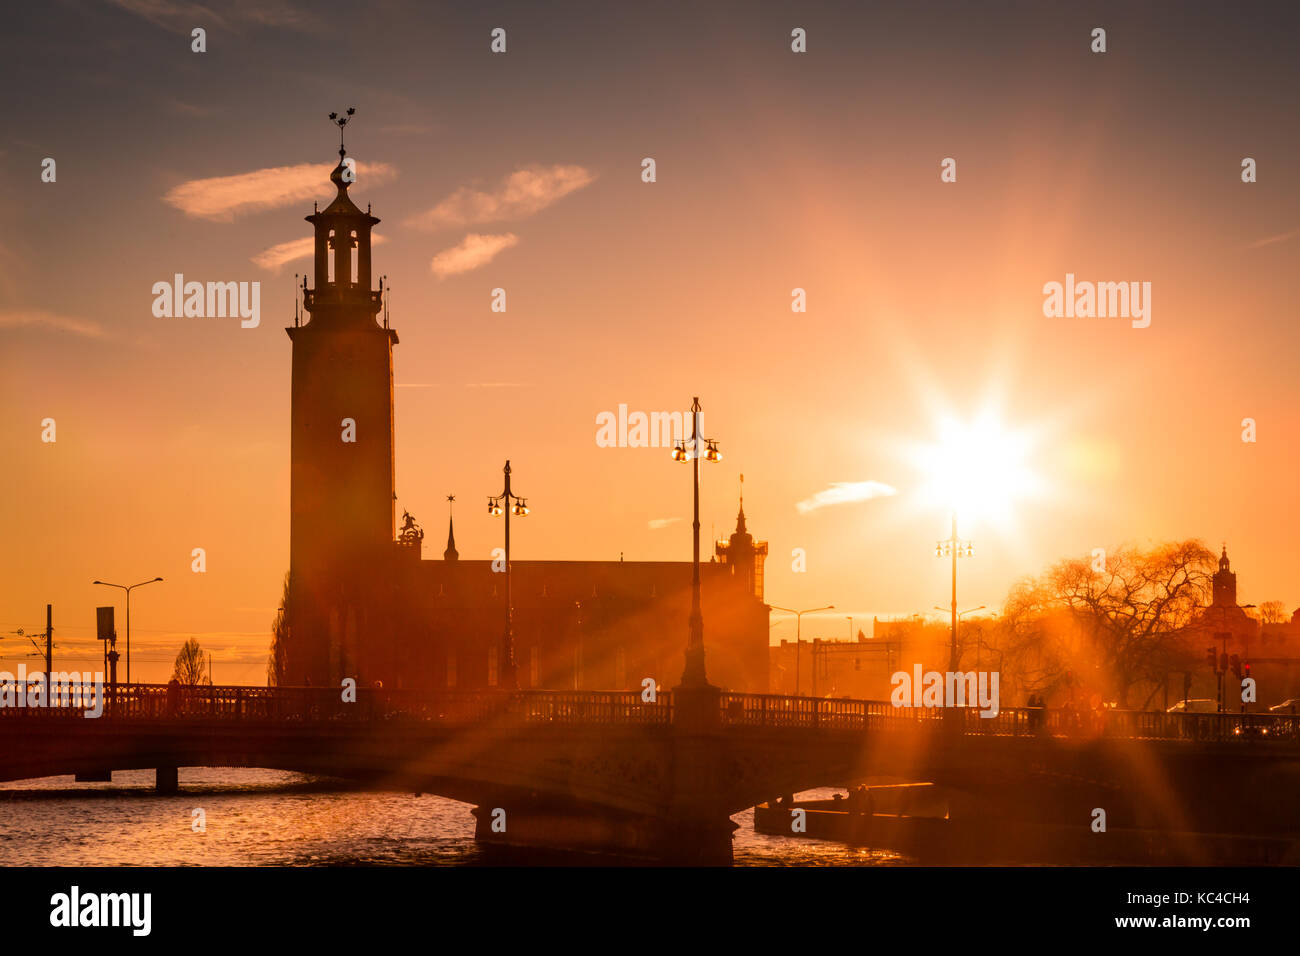 Sunset over the Stadhaus, Stockholm, Sweden - Stock Image